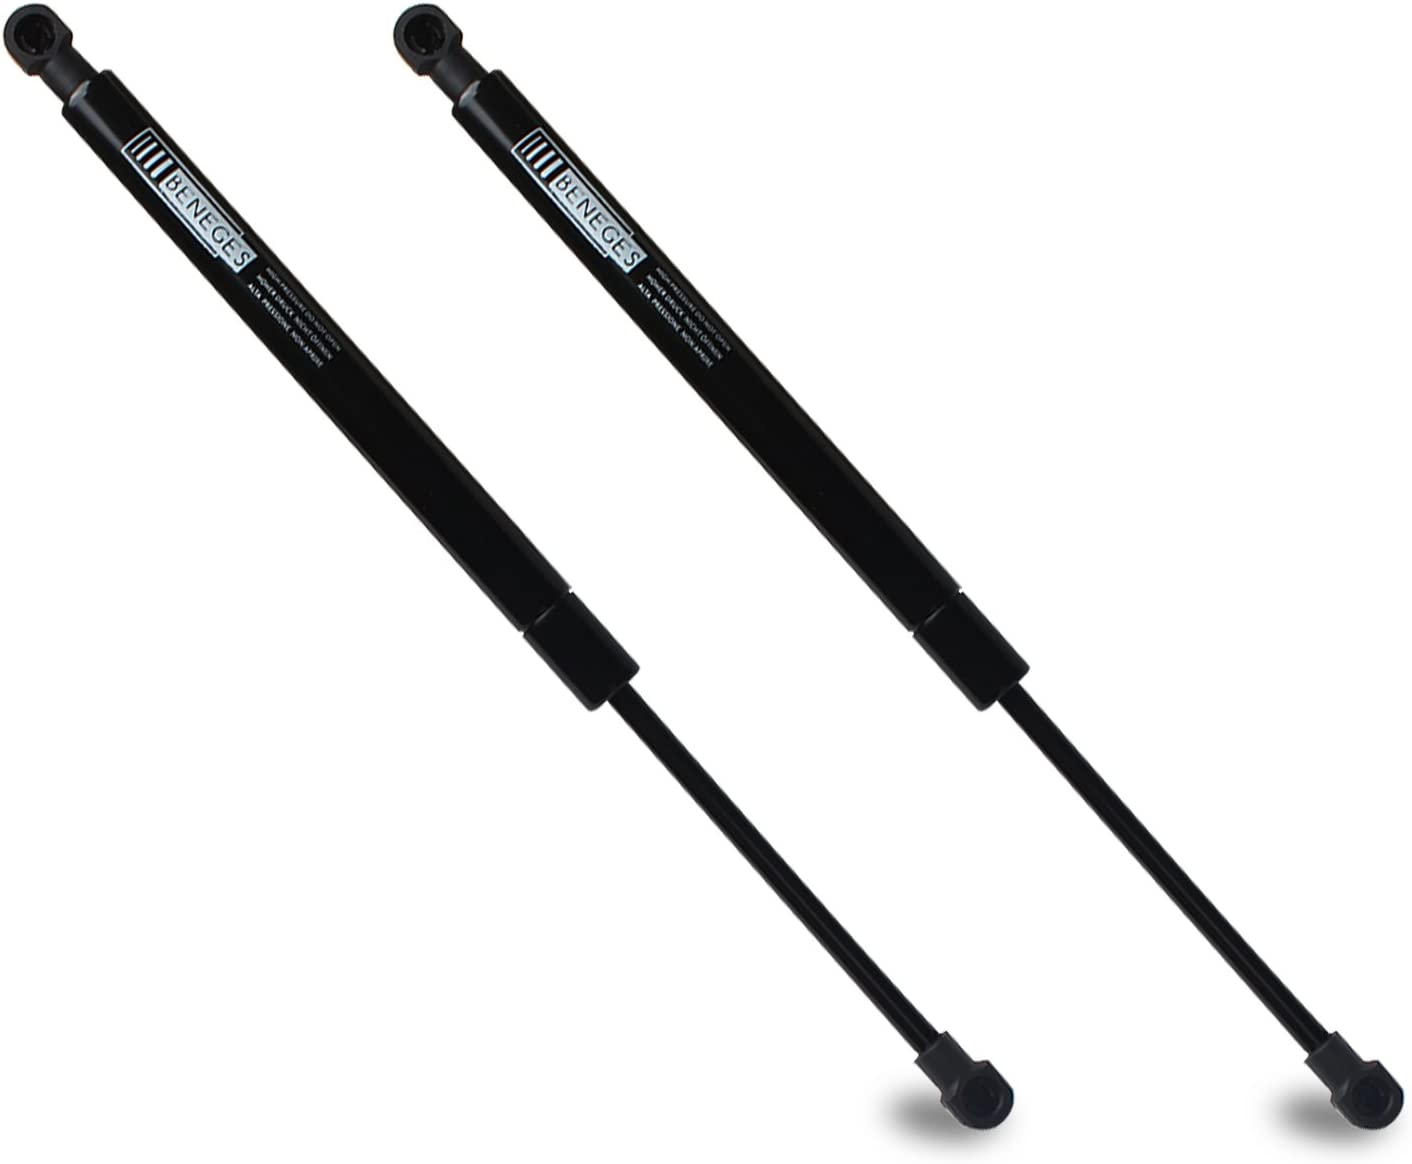 Beneges 2PCs Trunk Lift Supports Compatible with 2004-2009 Toyota Prius Rear Hatch Trunk Lift Gas Spring Charged Struts Shocks Dampers SG329019